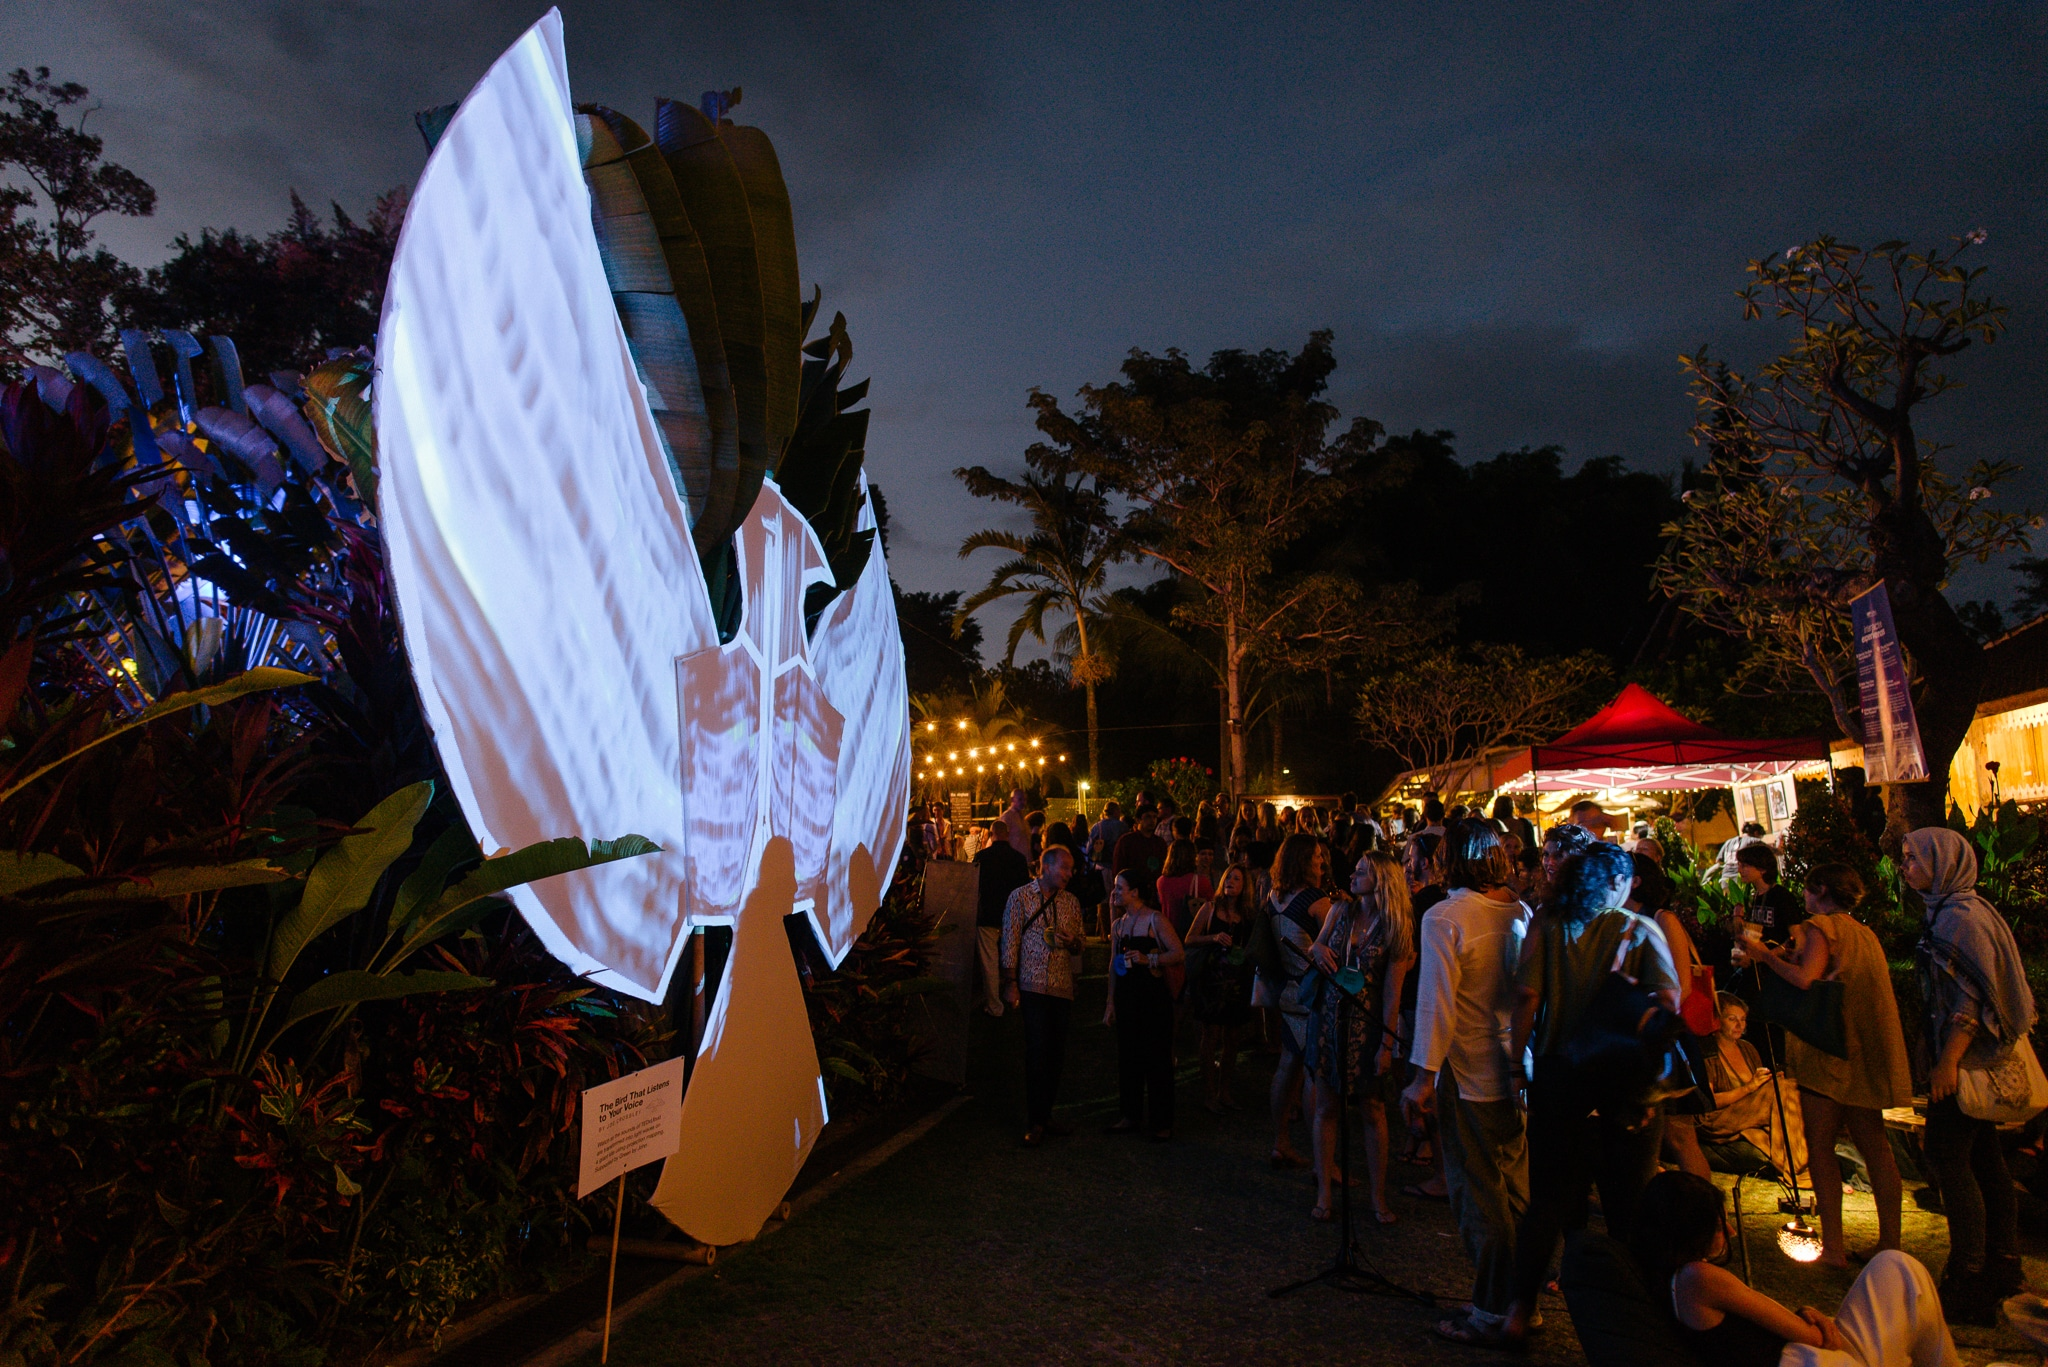 Installation by Joe Crossley at TEDxUbud